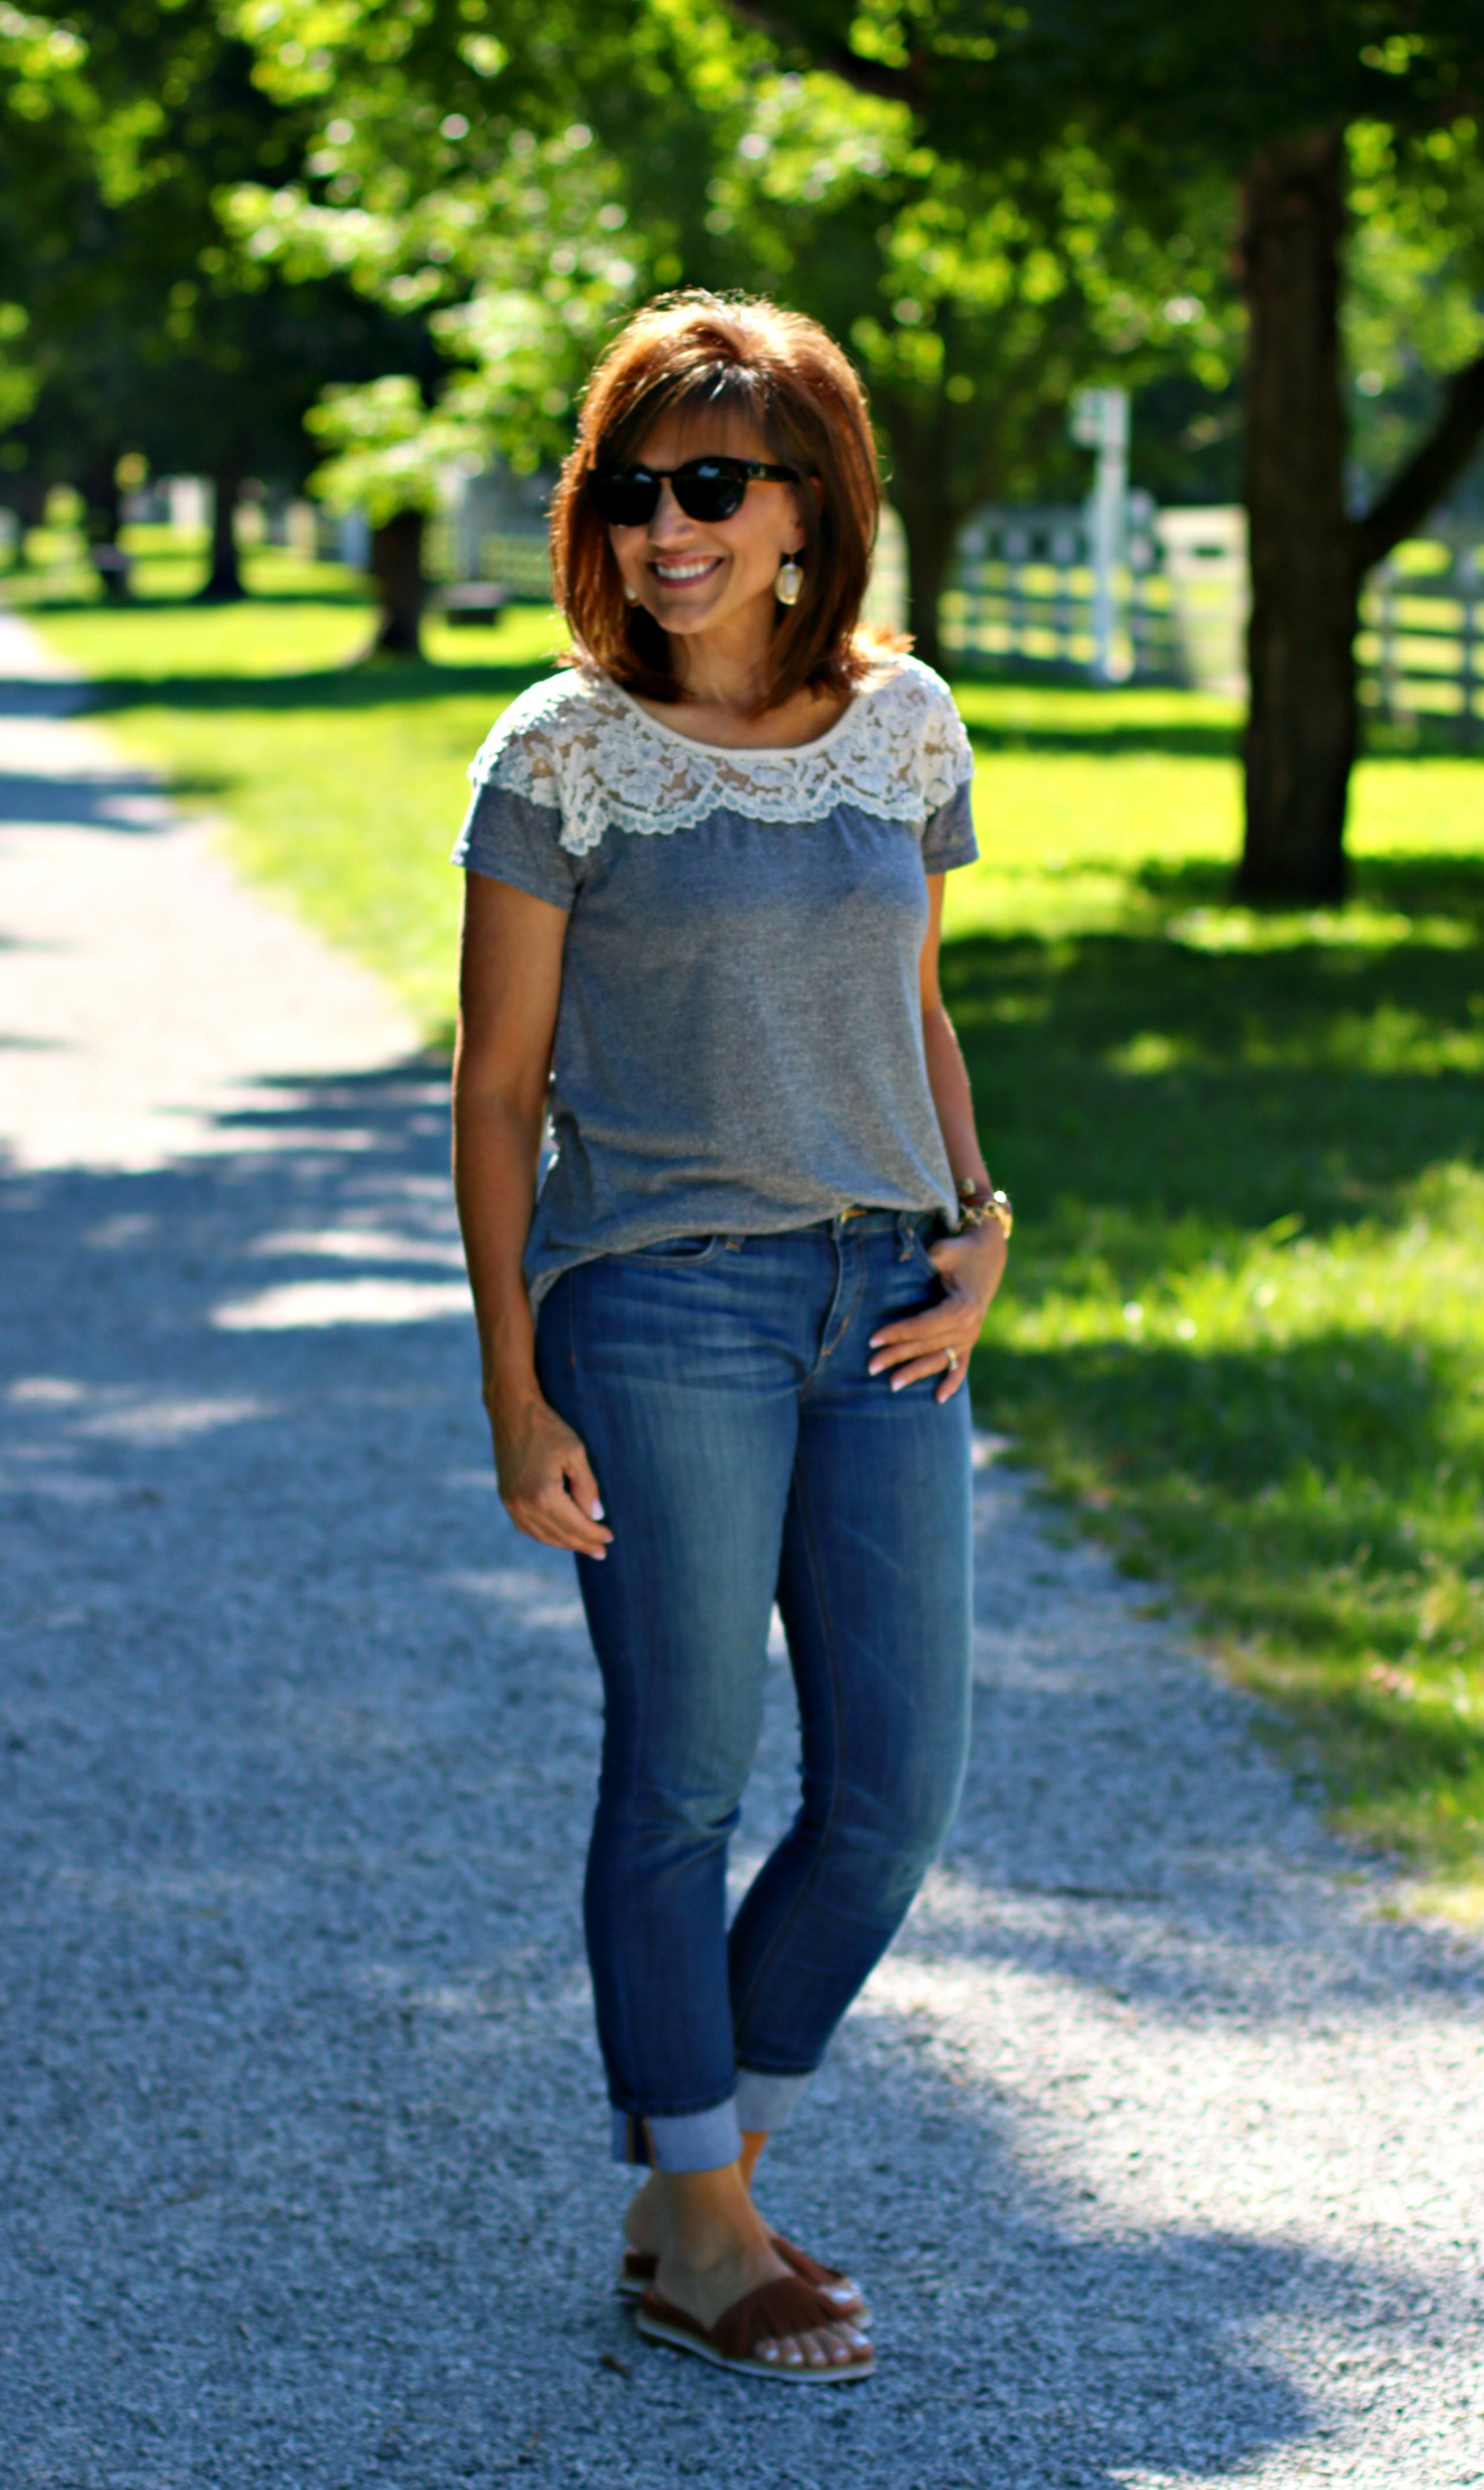 22 Days of Summer Fashion-Weekend Casual Outfit - Cyndi Spivey